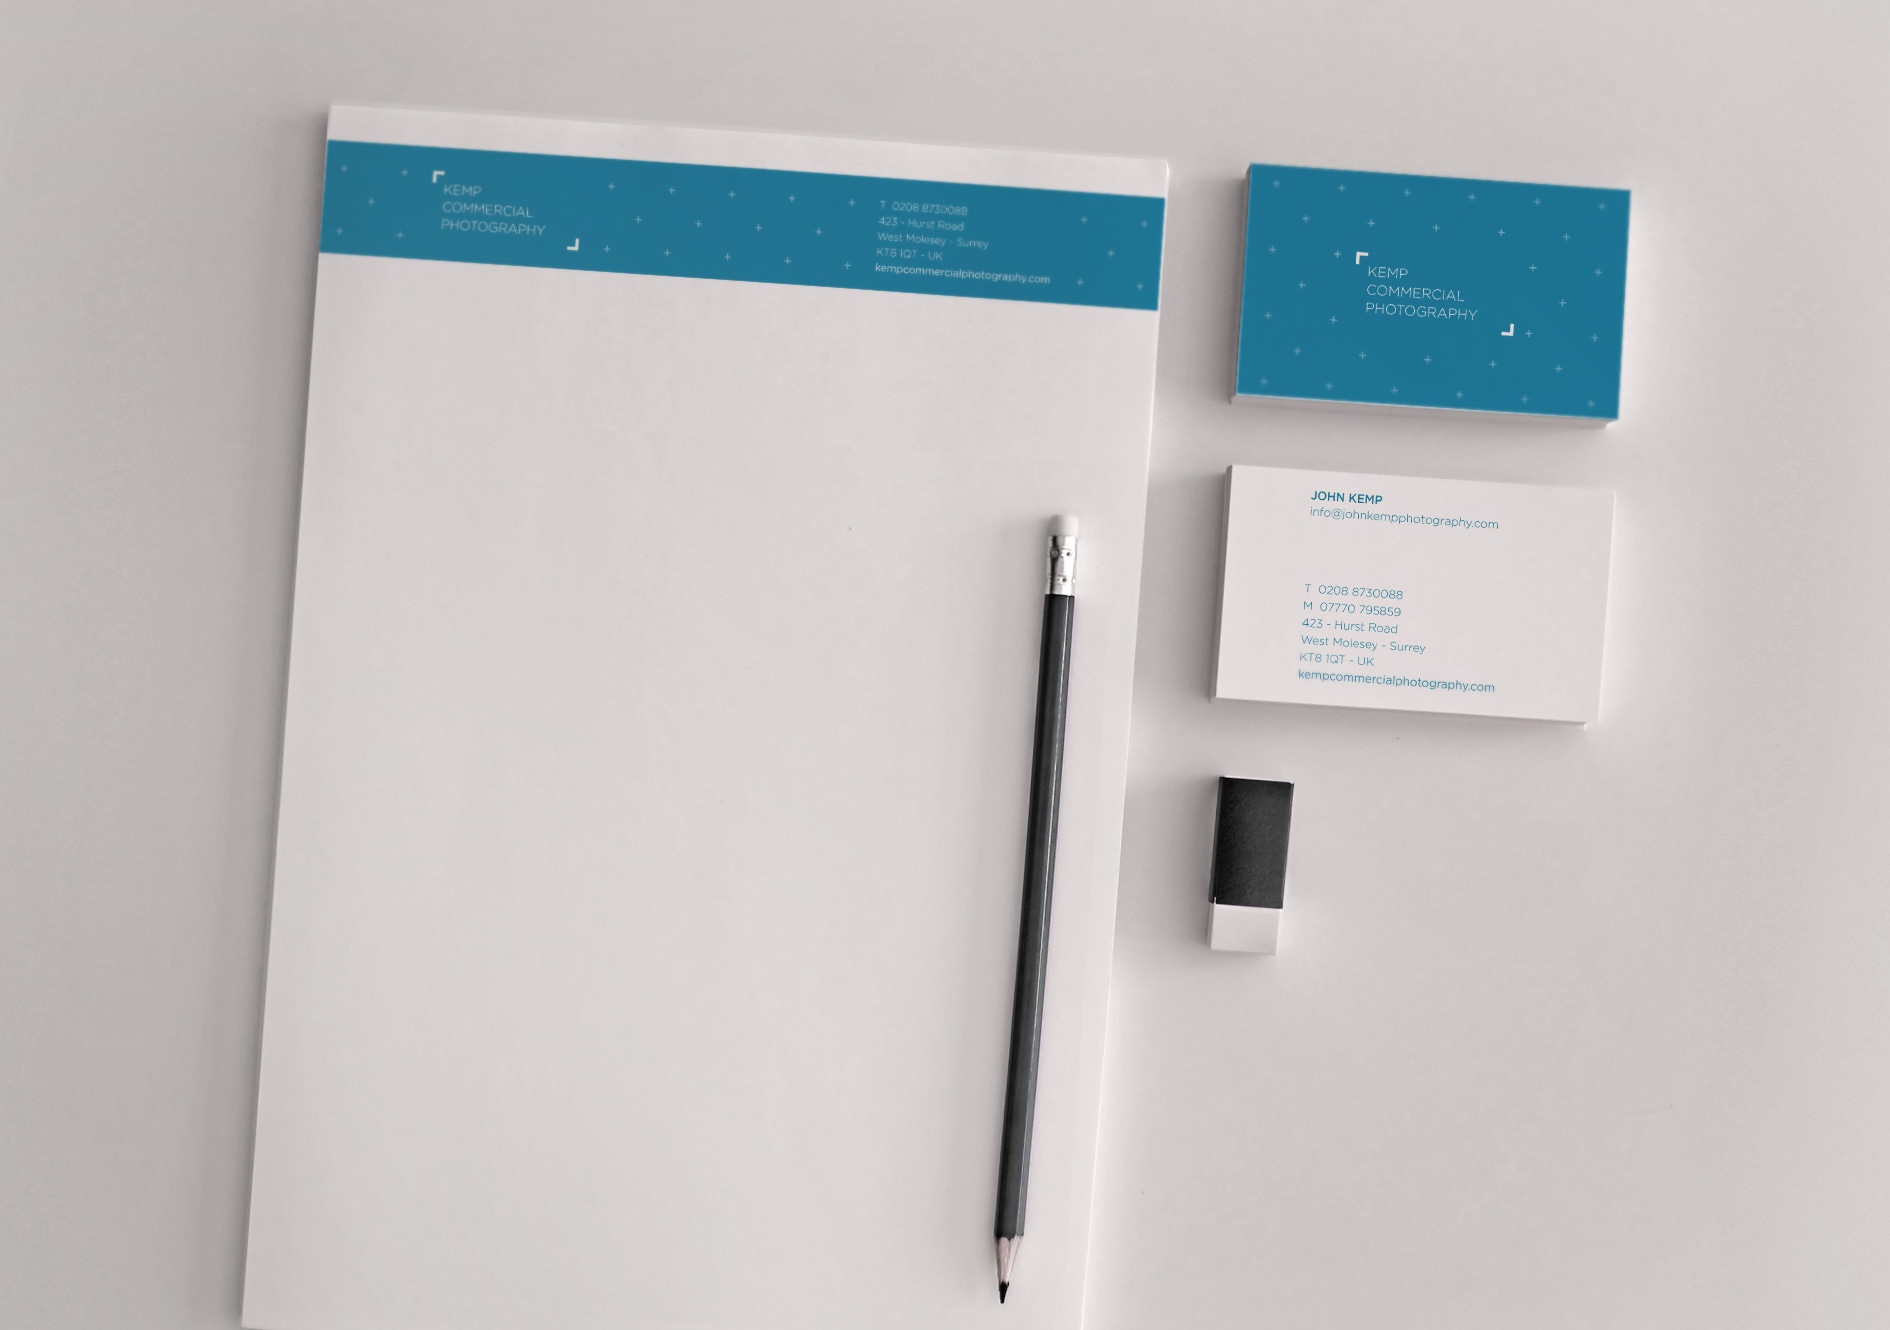 A photo of the stationery designed for Kemp Commercial Photography | Tribus Creative - stationery design for small business